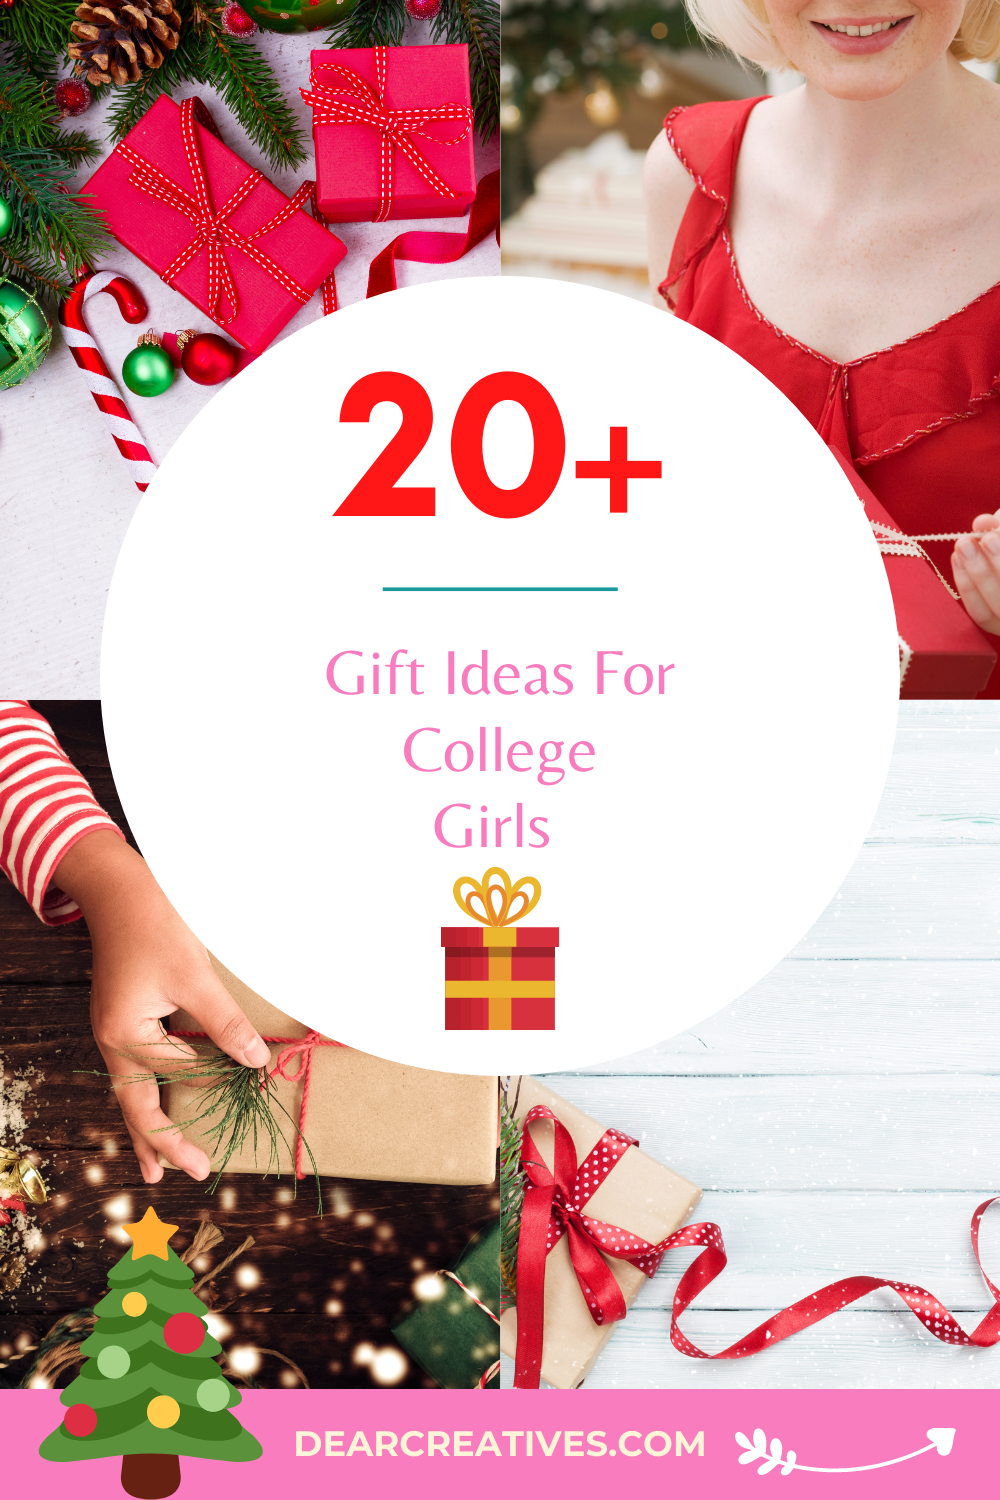 College Girl Christmas Gifts